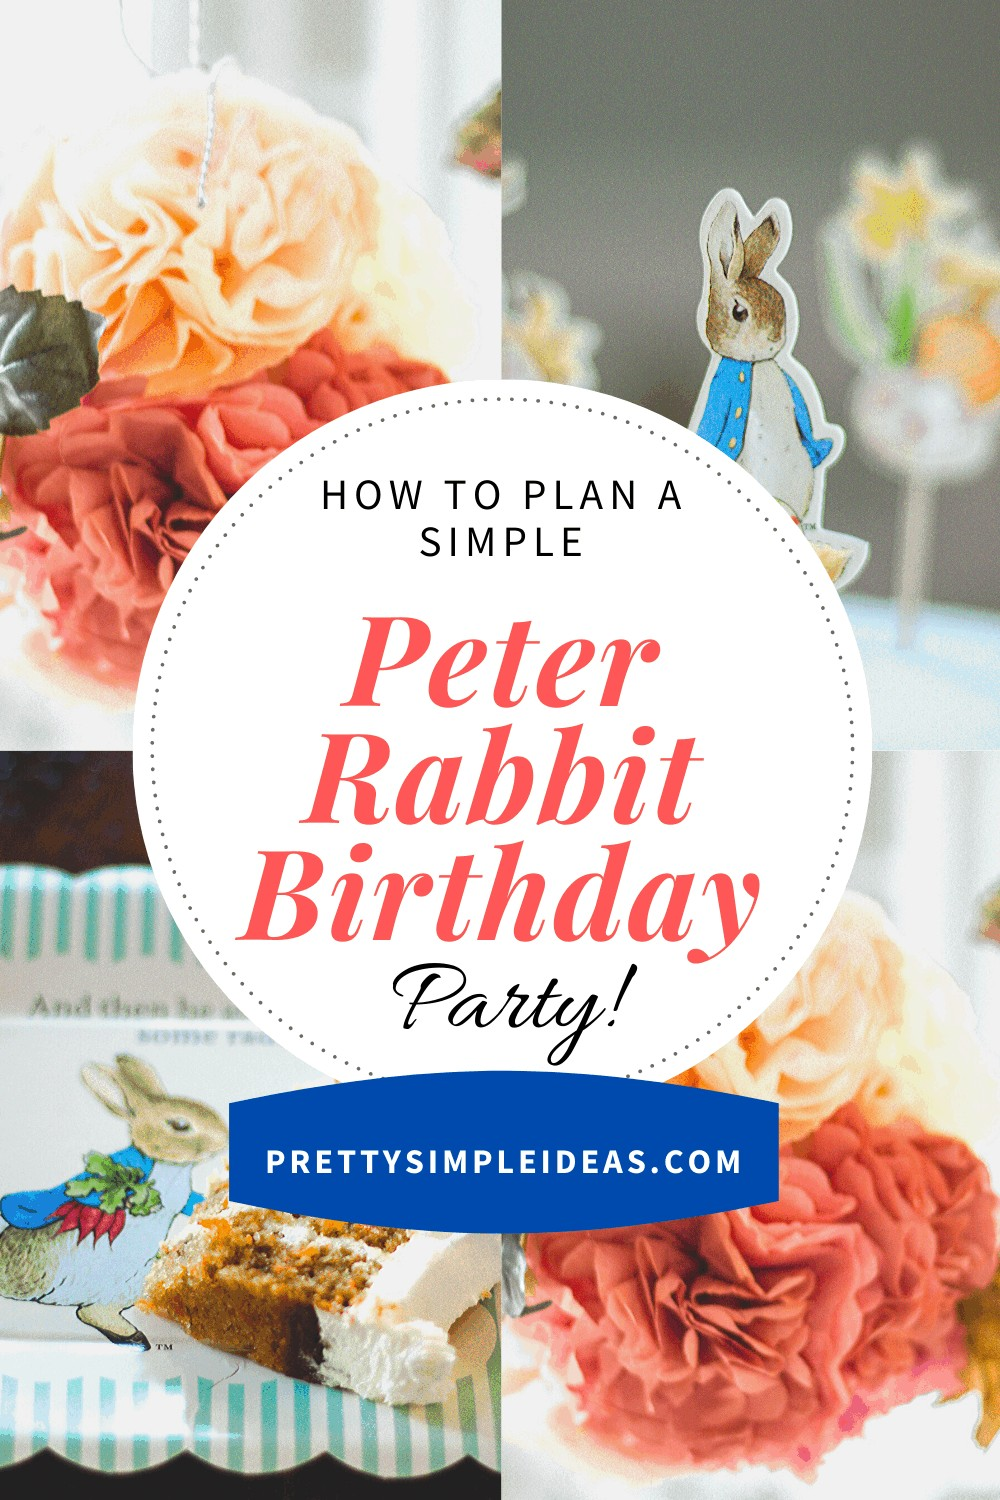 Simple Peter Rabbit Birthday Party Ideas